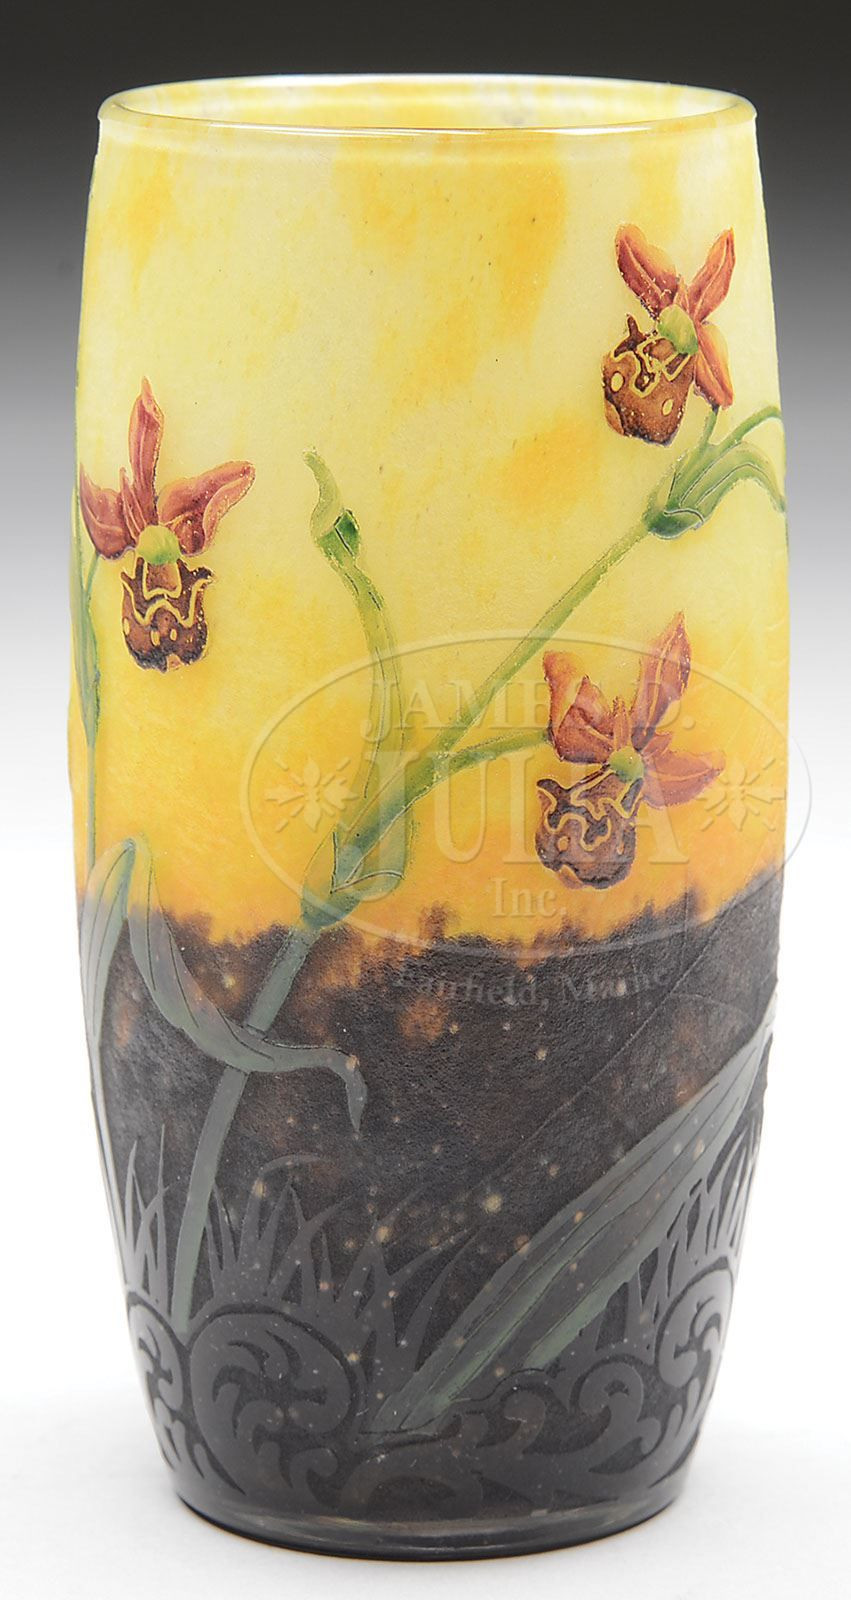 cameo glass vase of james d julia inc daum nancy french cameo vase tumbler shaped regarding james d julia inc daum nancy french cameo vase tumbler